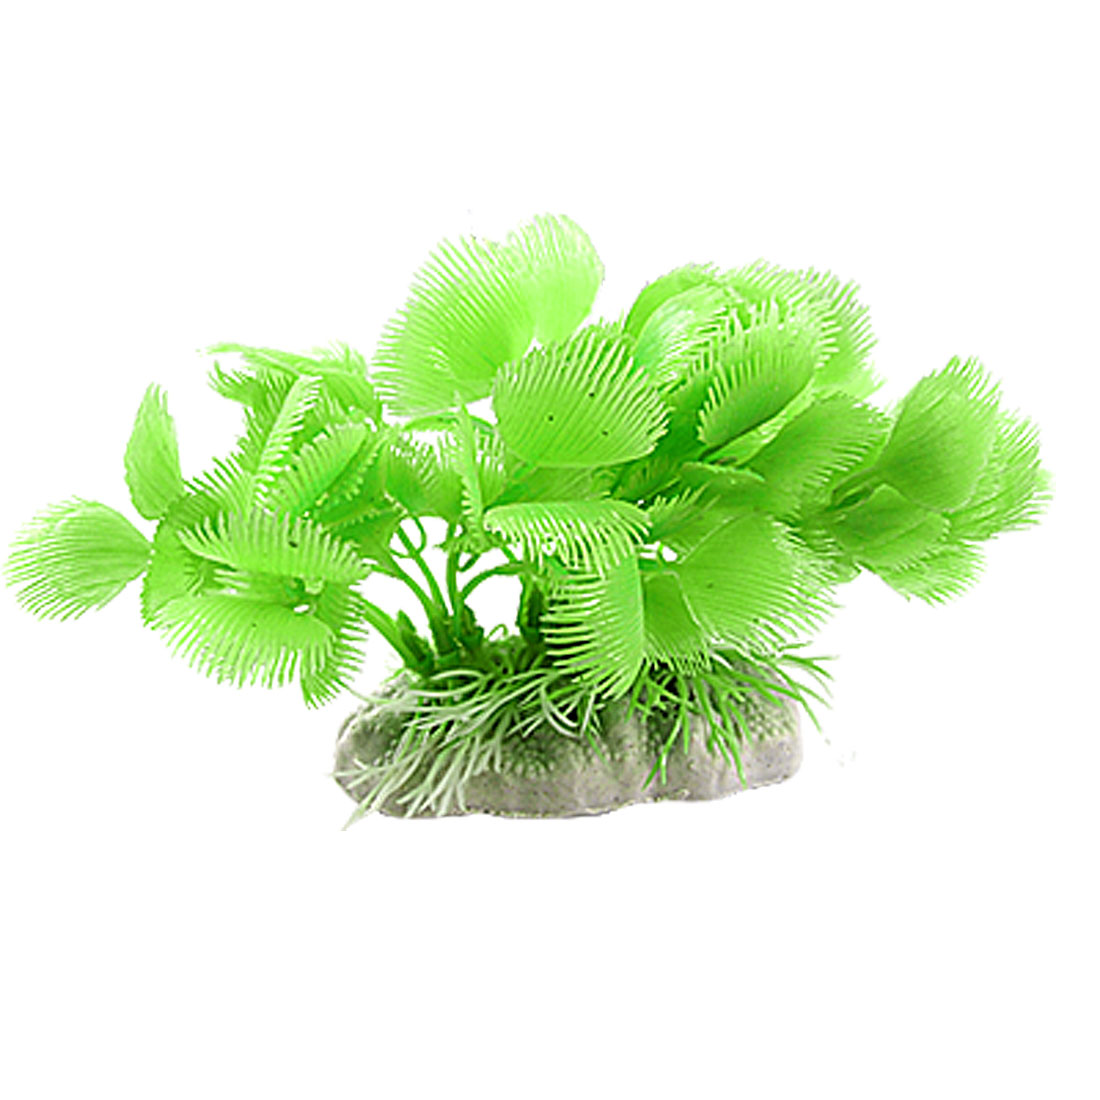 Aquarium Fish Tank Ornament Artificial Green Plastic Plants